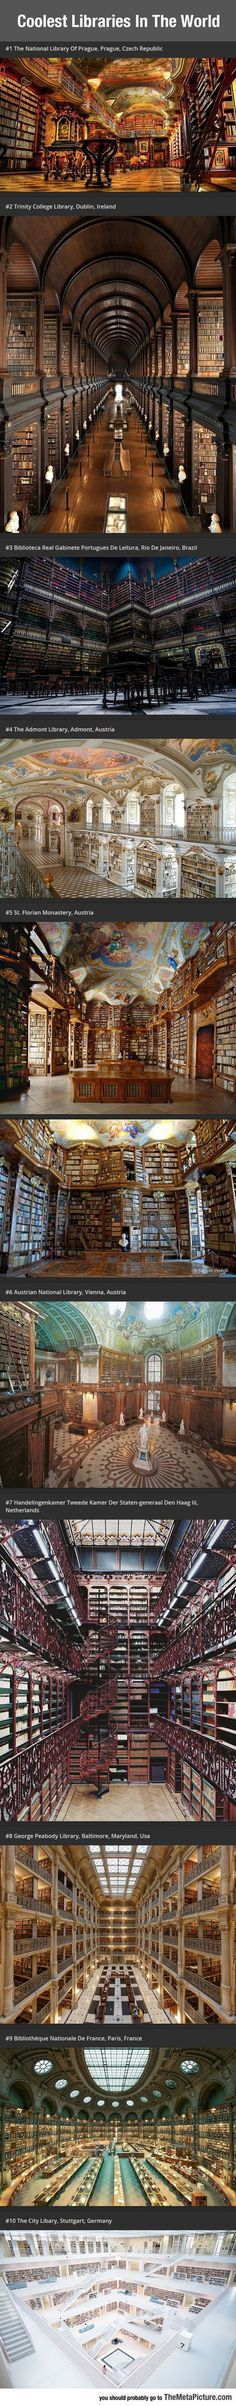 Libraries In The World To reinforce my desire to visit Austria.To reinforce my desire to visit Austria. Oh The Places You'll Go, Places To Travel, Places To Visit, Voyage Europe, I Want To Travel, Future Travel, Adventure Is Out There, Dream Vacations, Travel Inspiration